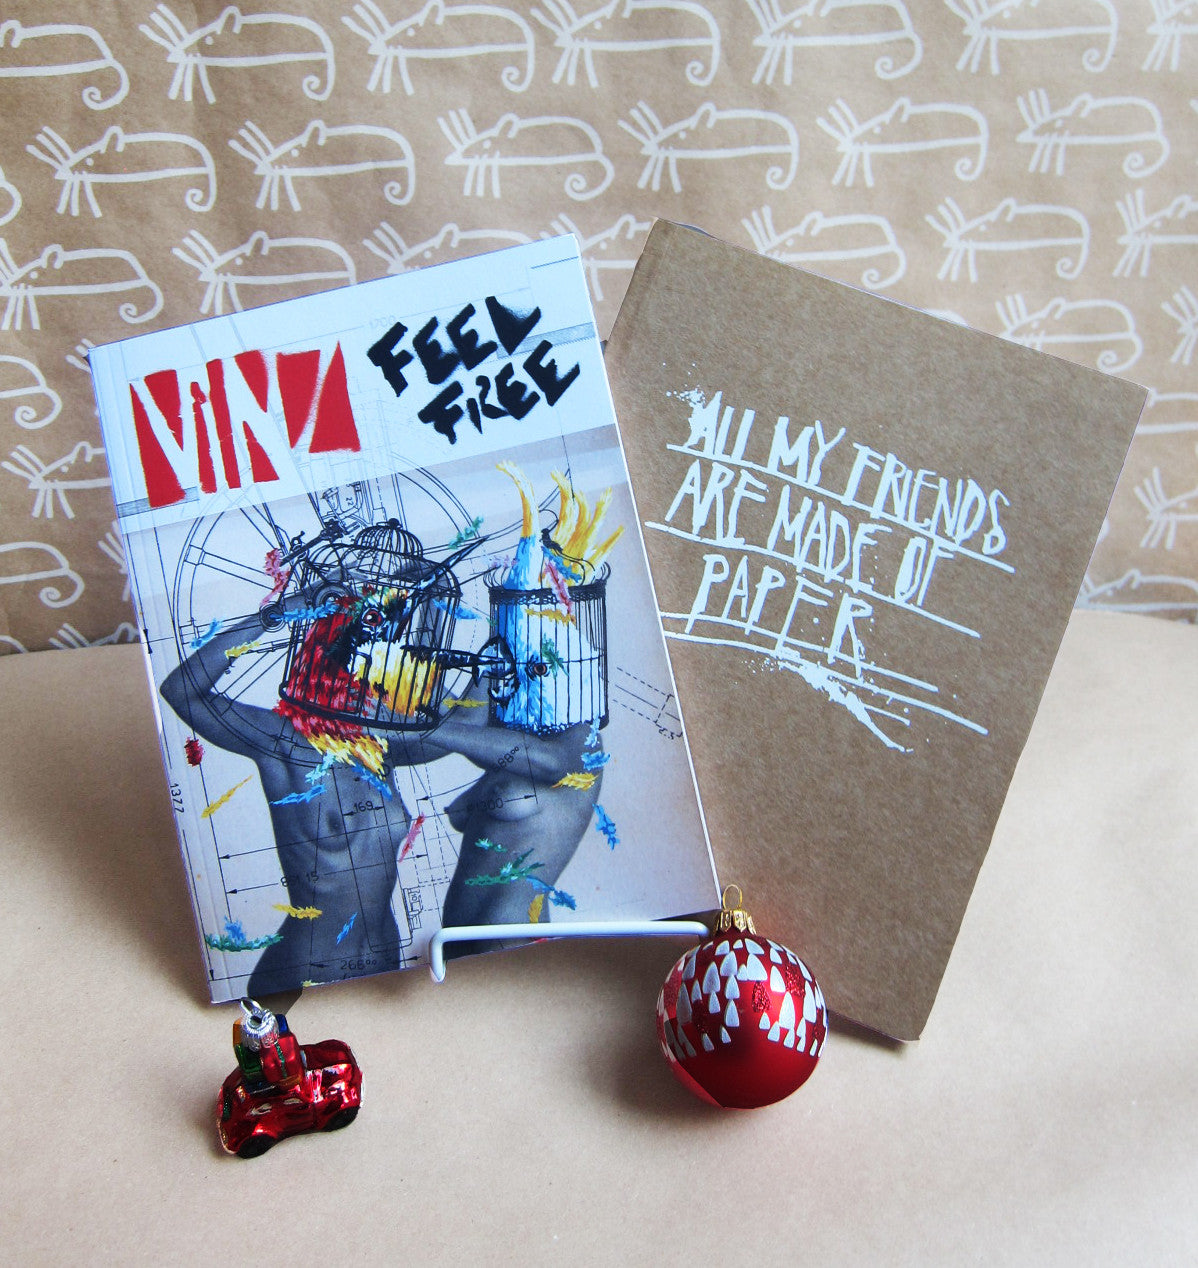 INTERNATIONAL: 2 Book Bundle: Vinz Feel Free & All My Friends Are Made Of Paper -- 60% off